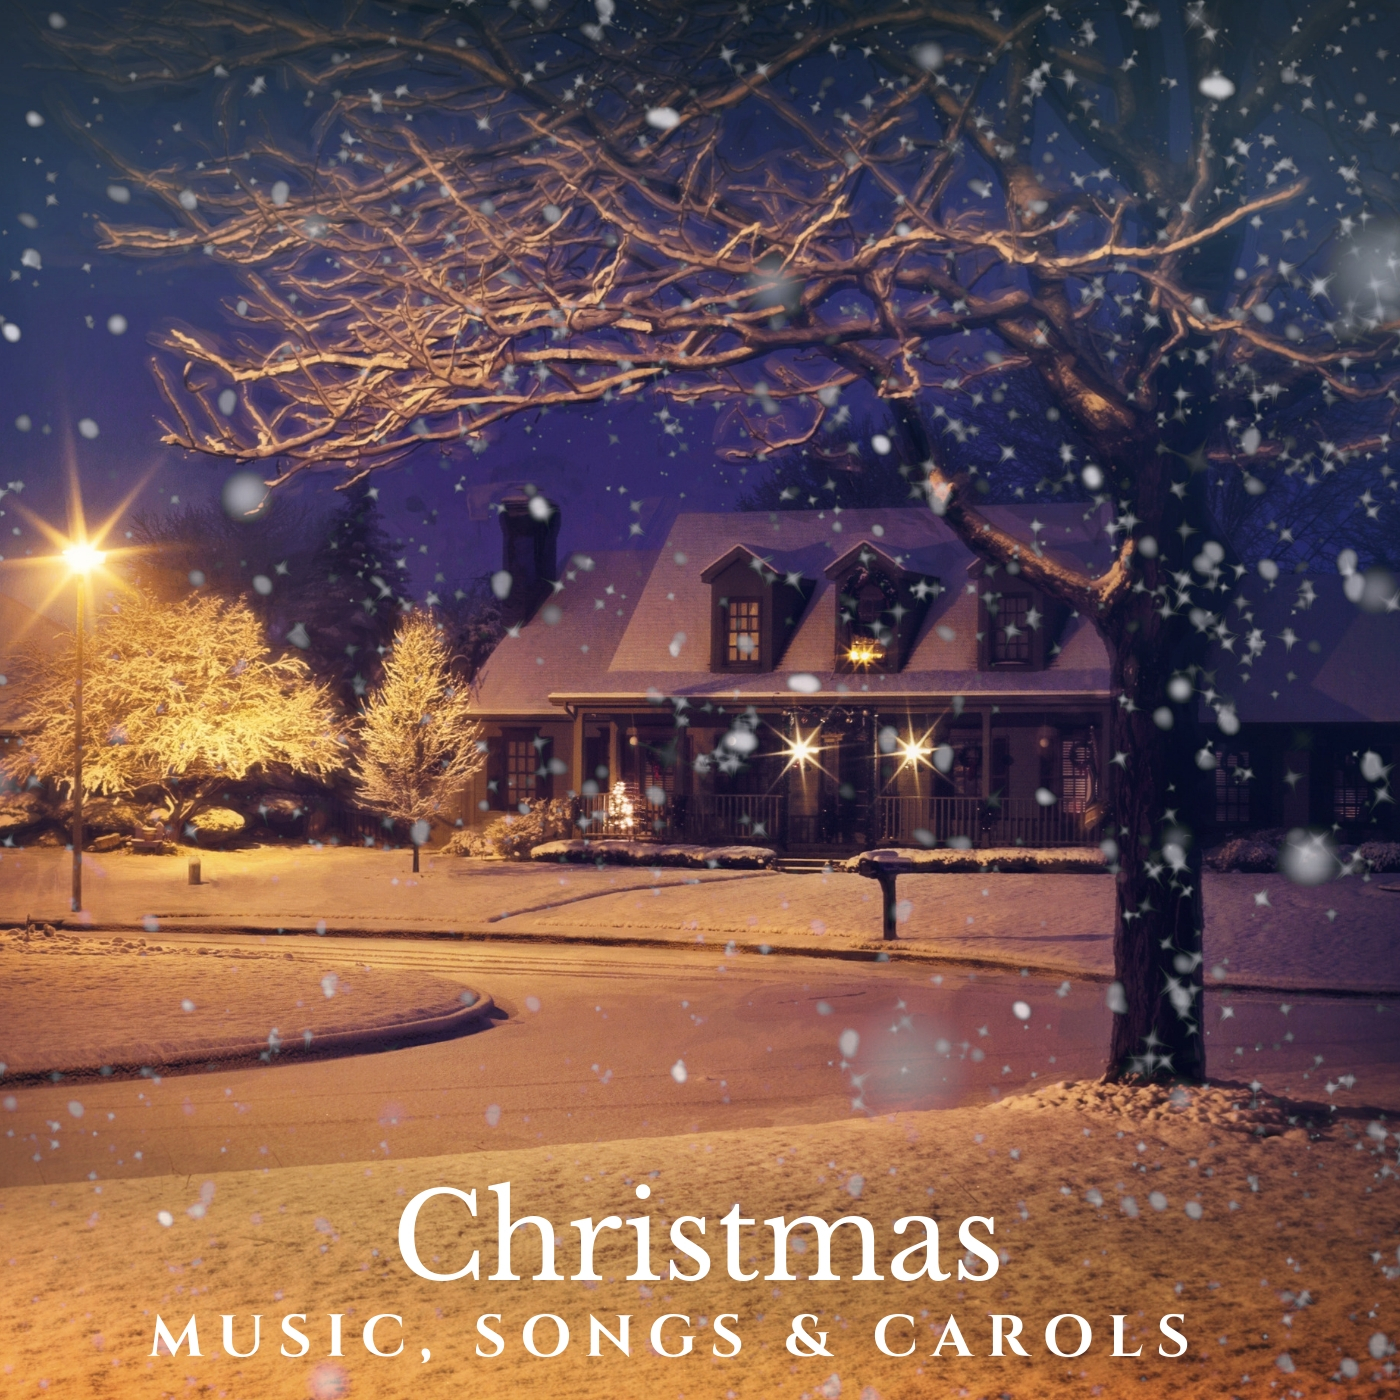 The Best Christmas Music, Songs & Carols